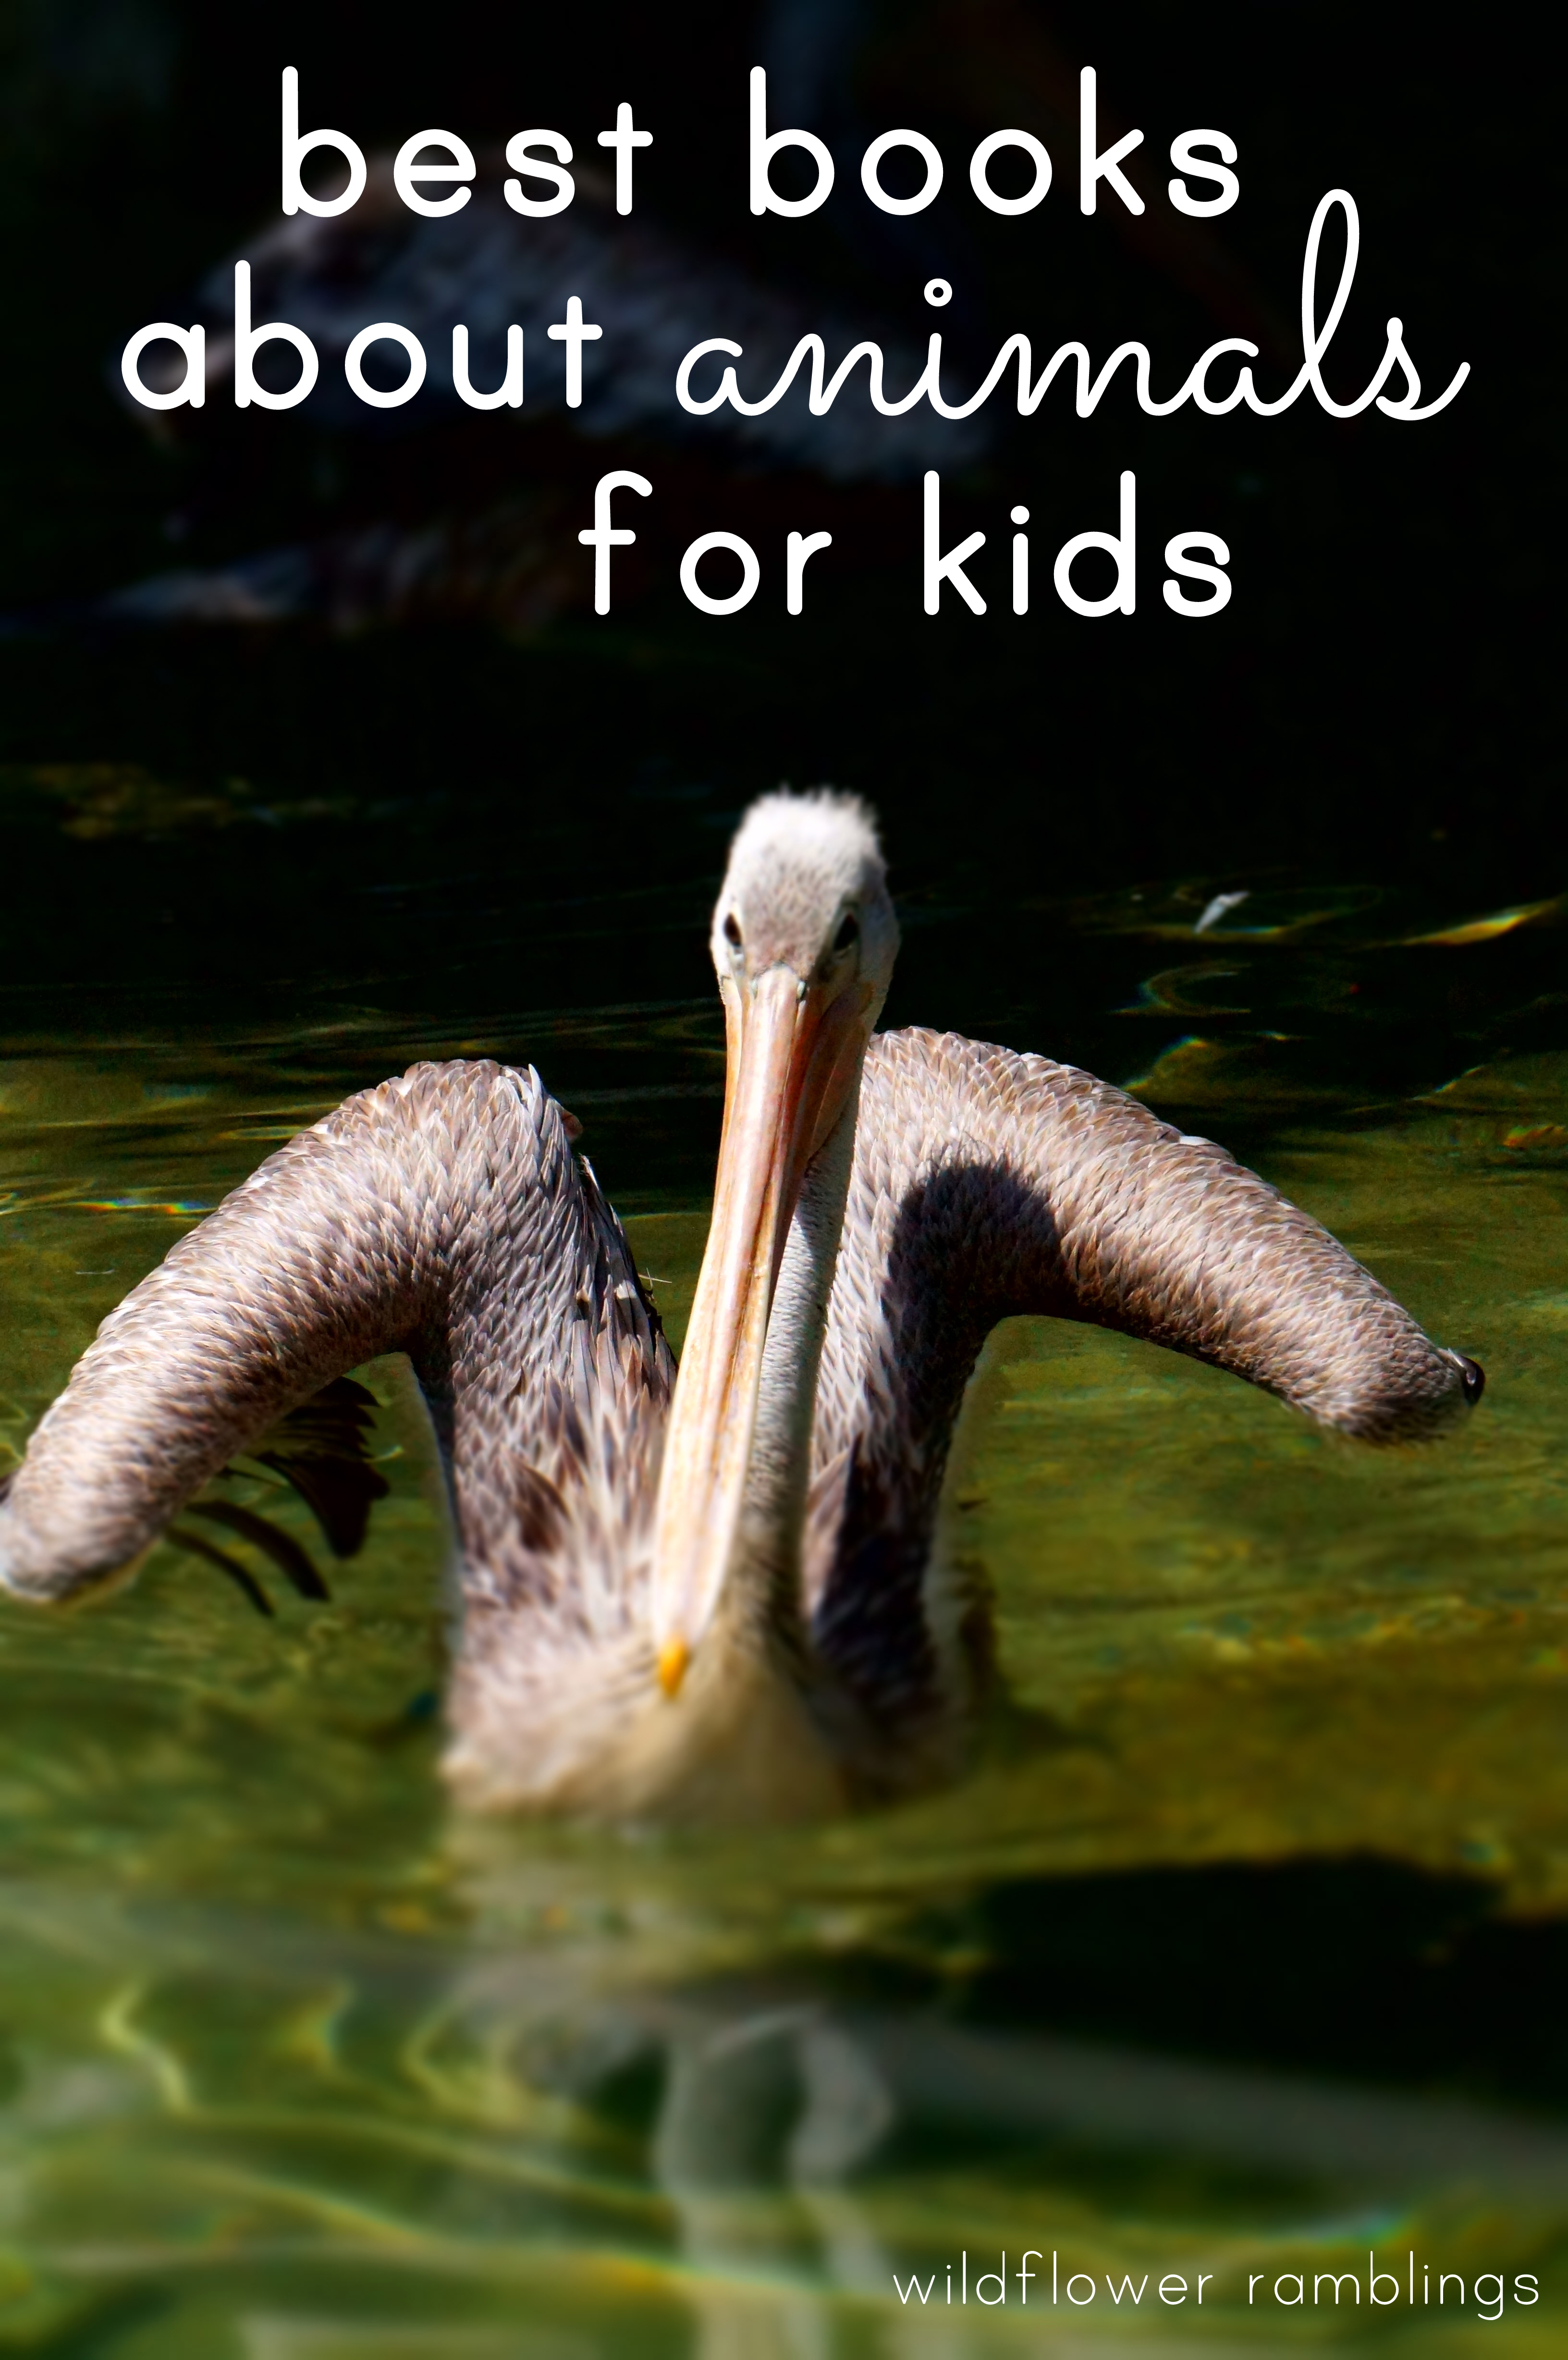 best books about animals for kids wildflower ramblings